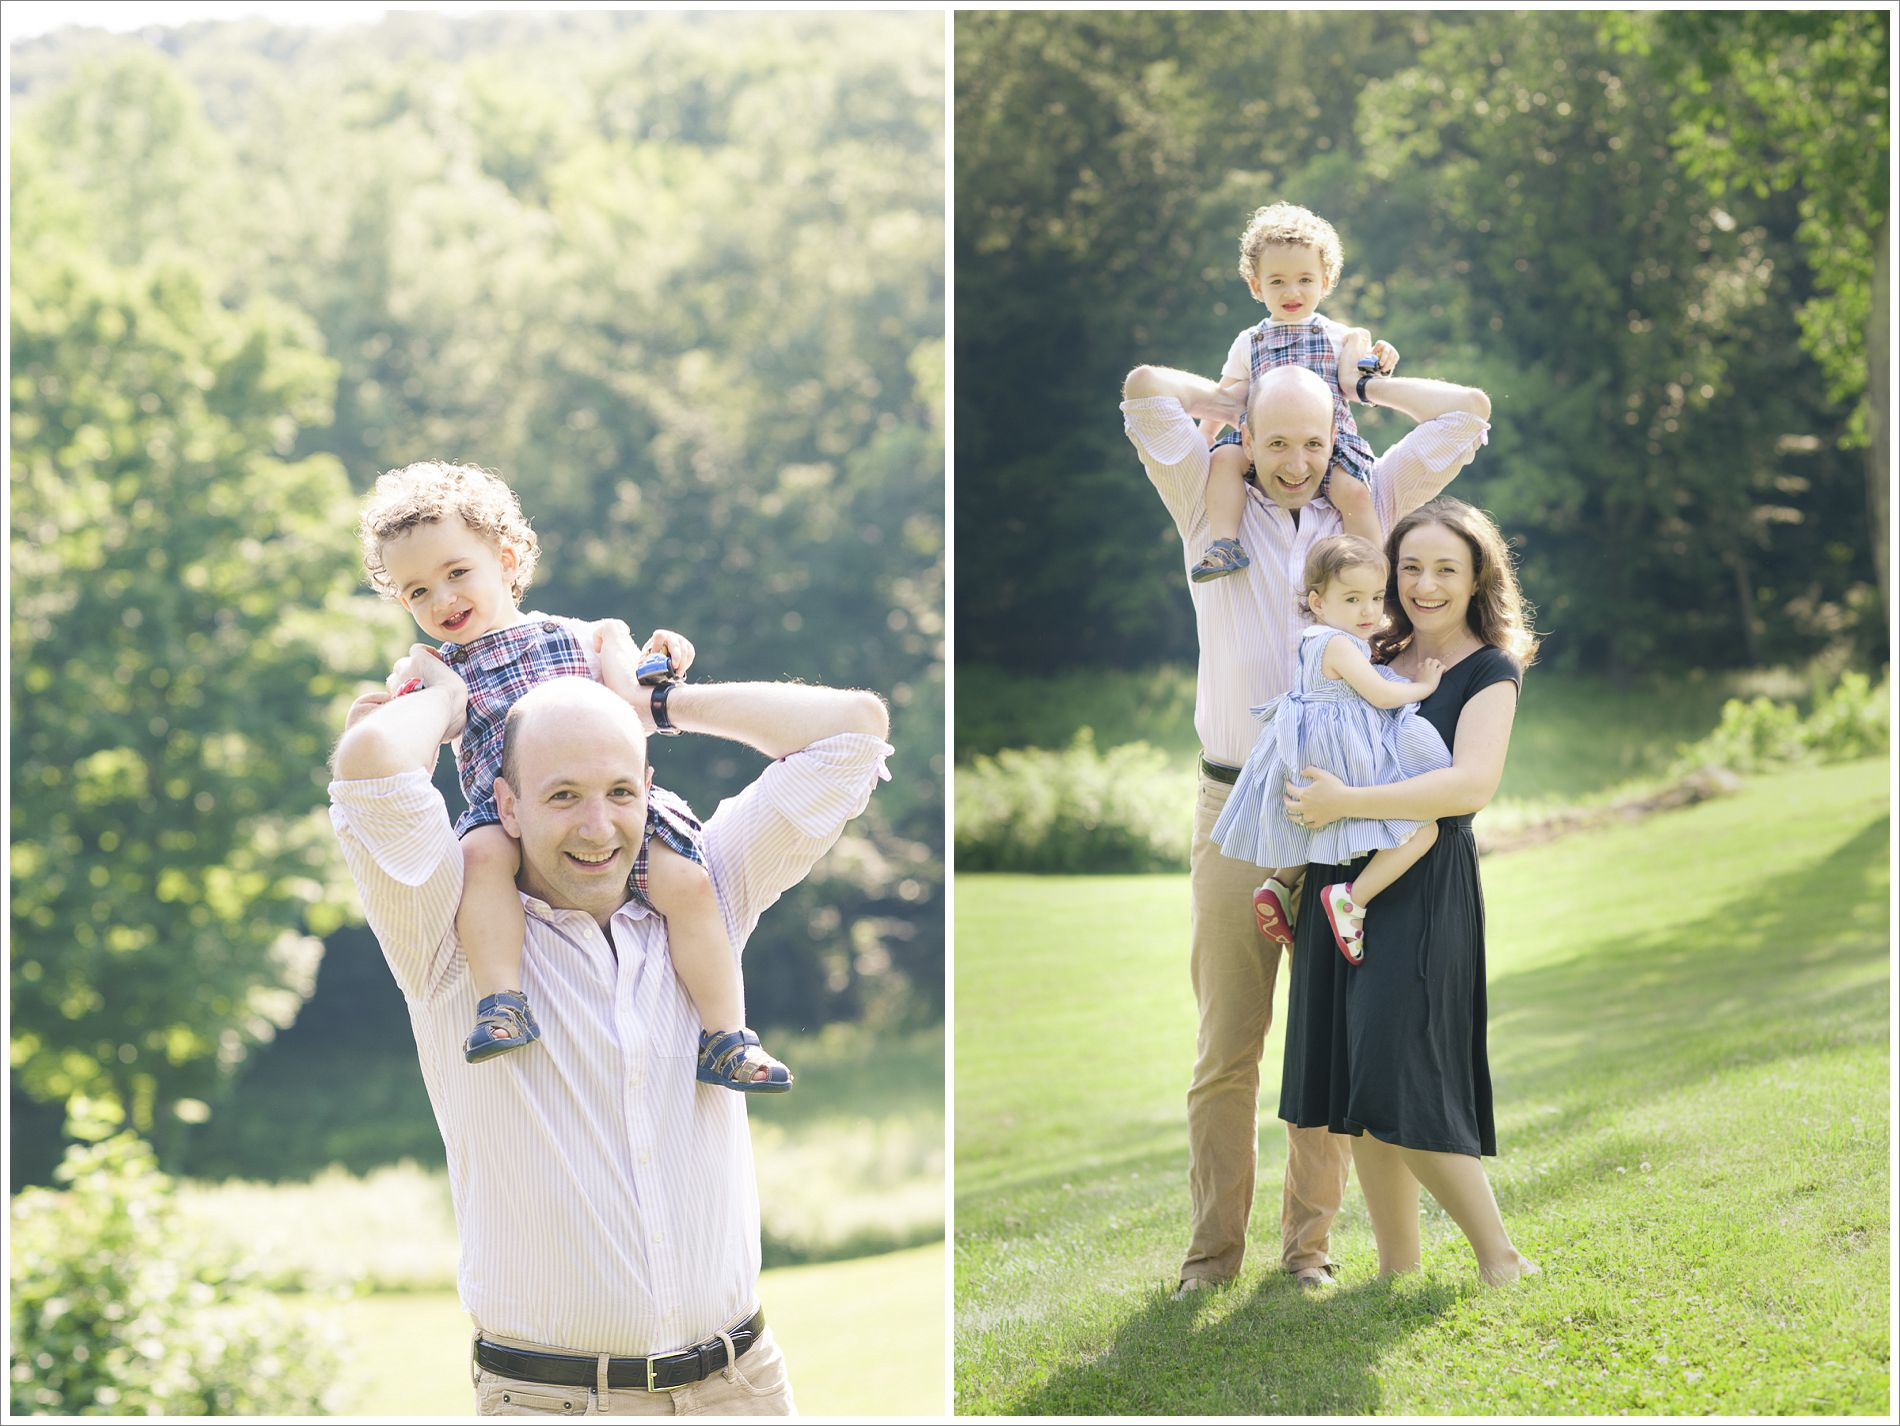 verva photography. family portraits